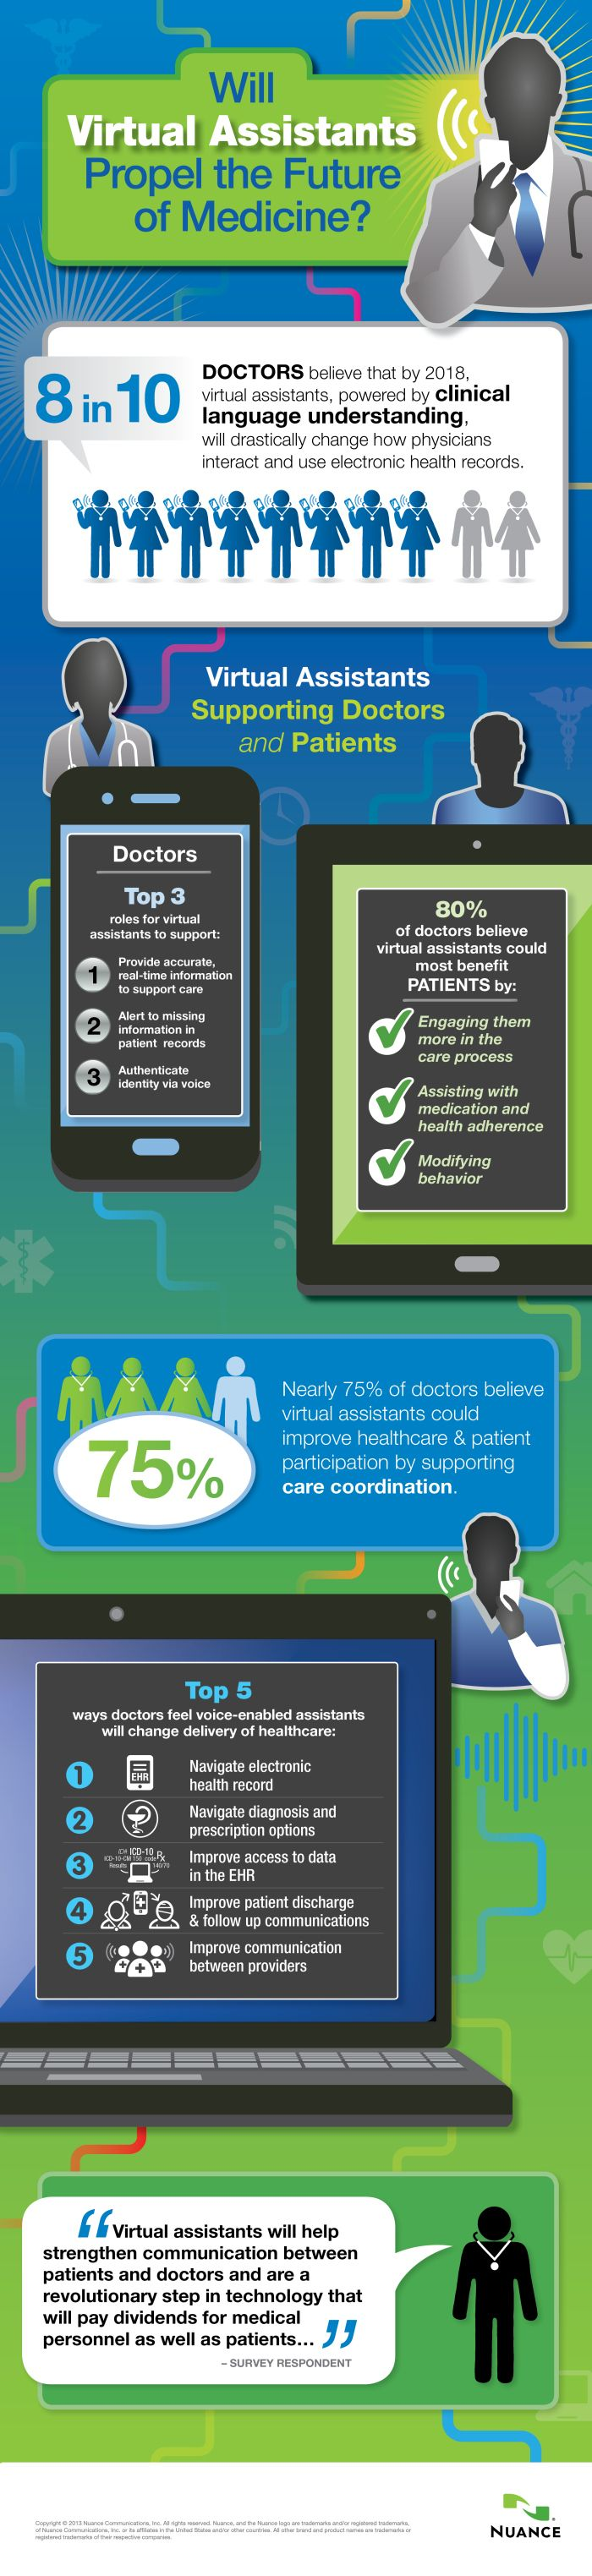 tele tıp--Infographic: Will Virtual Assistants Propel the Future of Medicine?